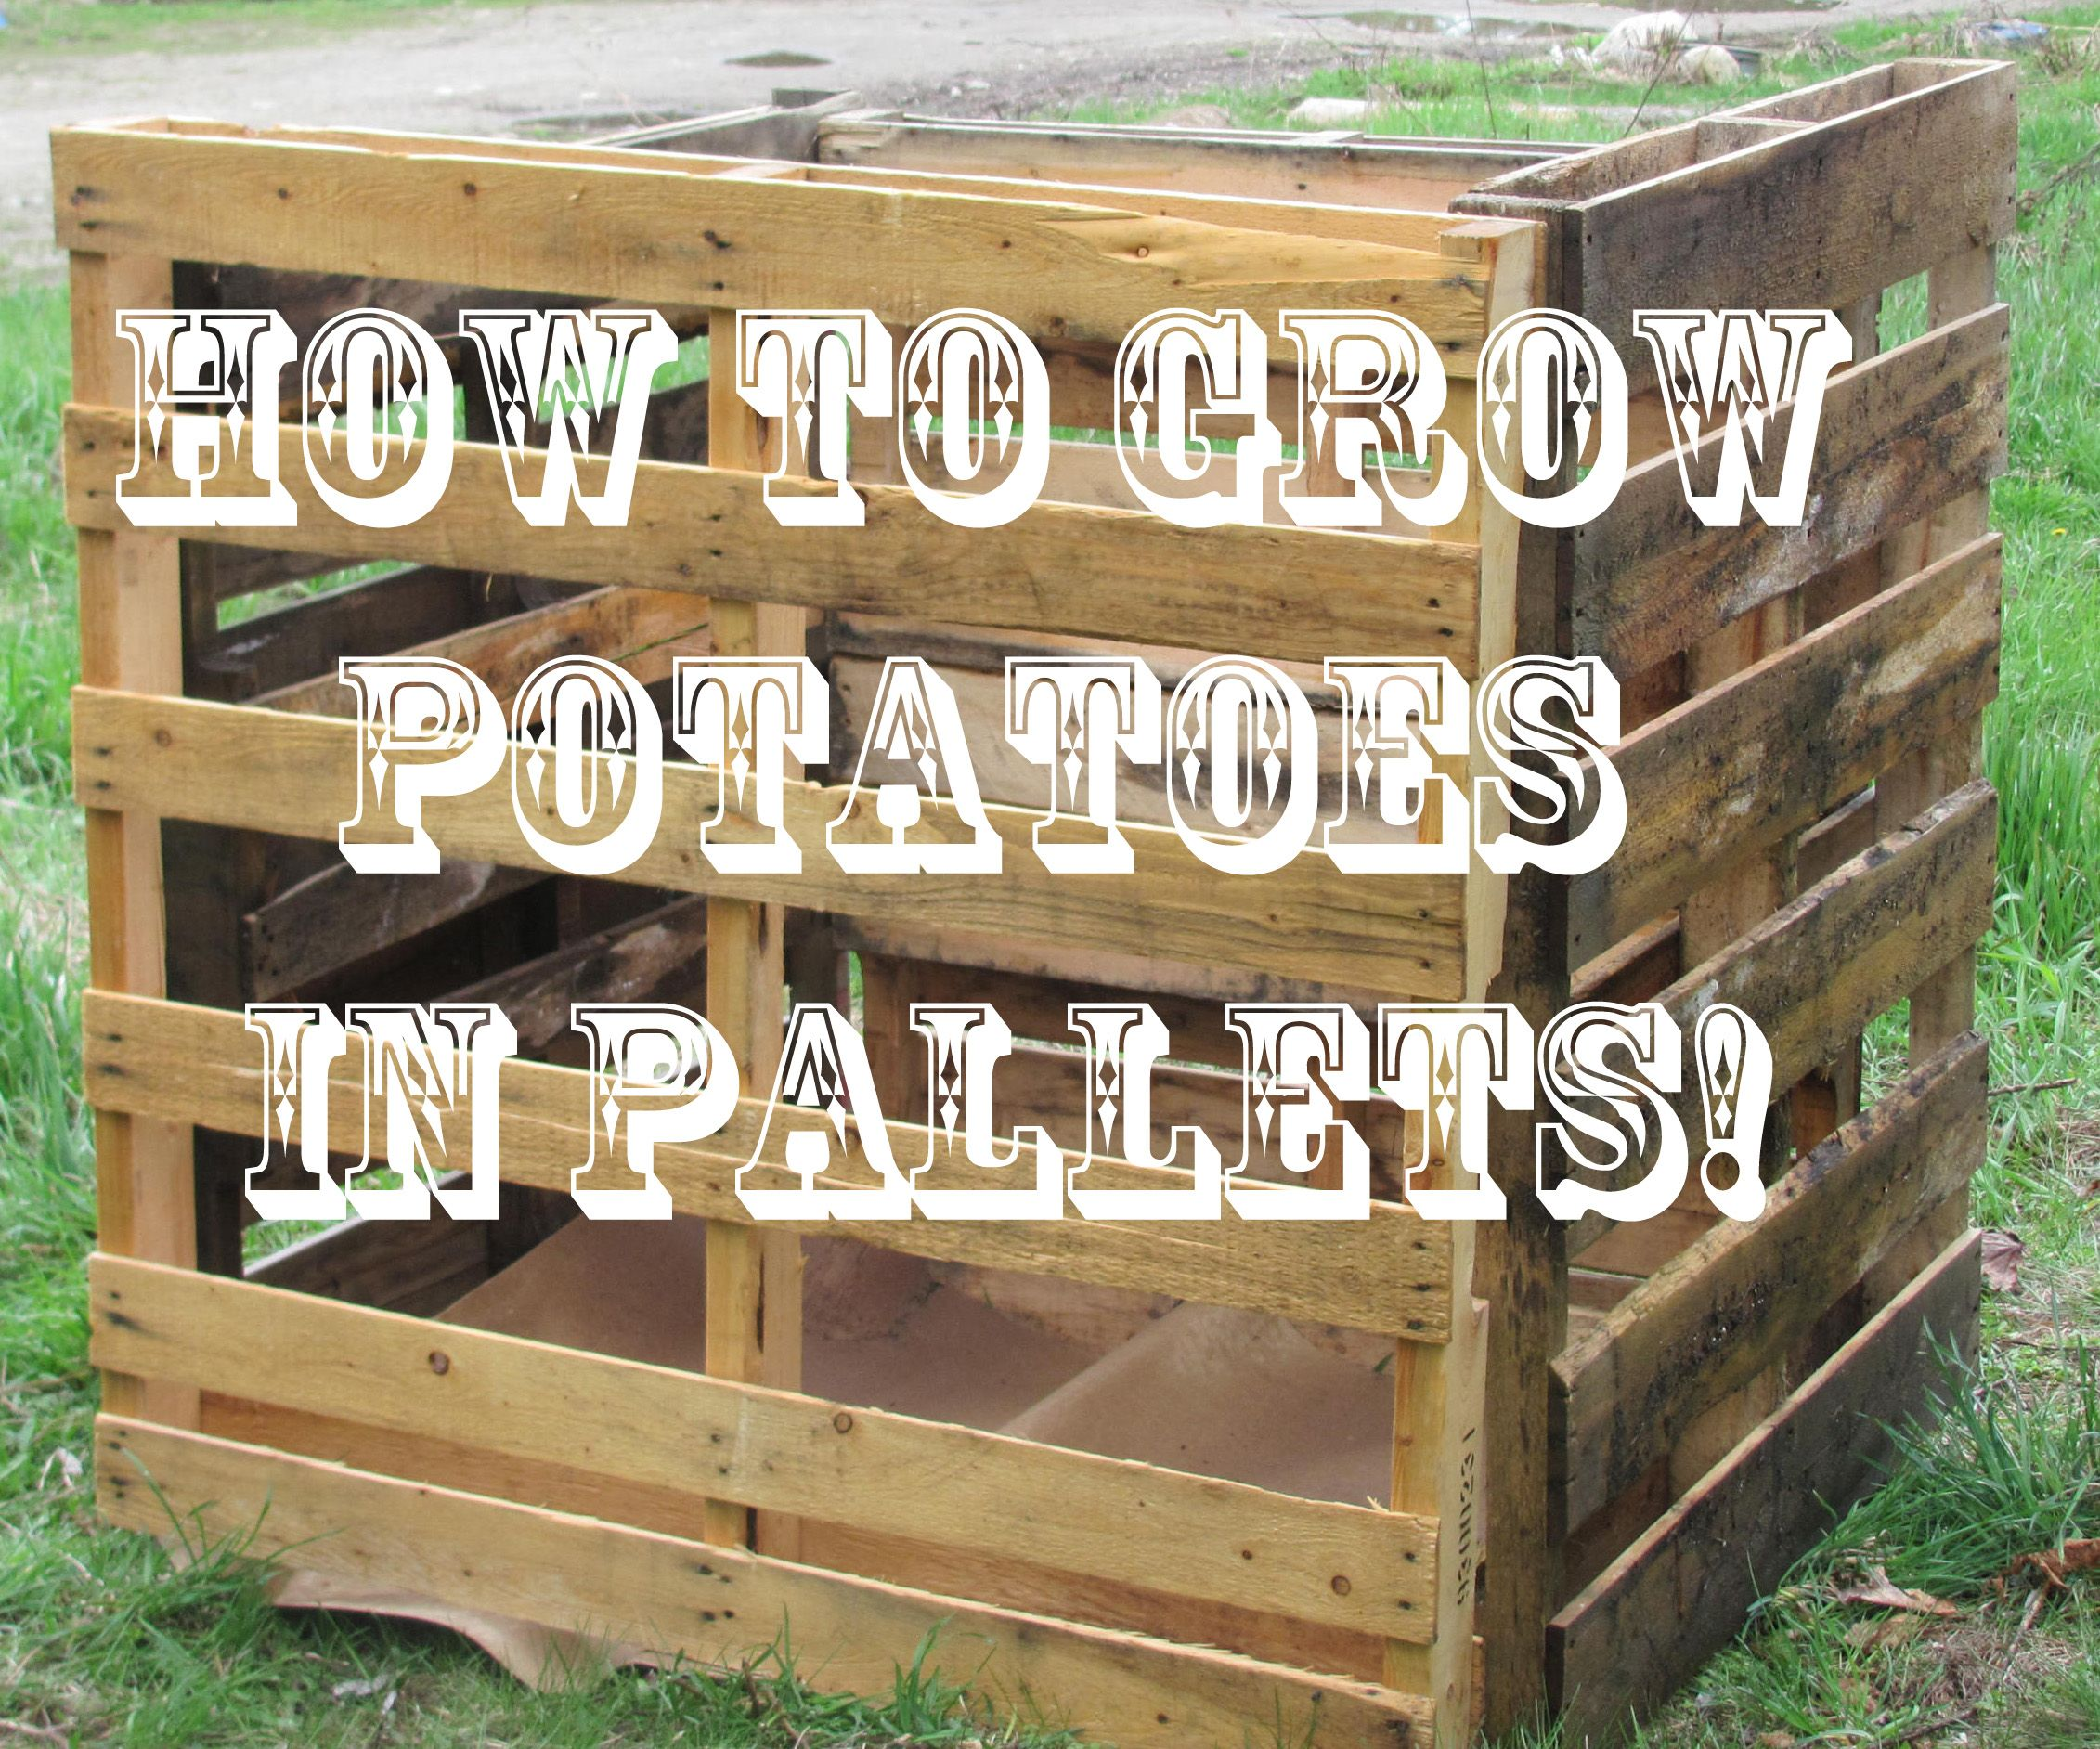 Wooden transport pallets have become increasingly popular for diy - Diy Potato Container With Re Purposed Pallets